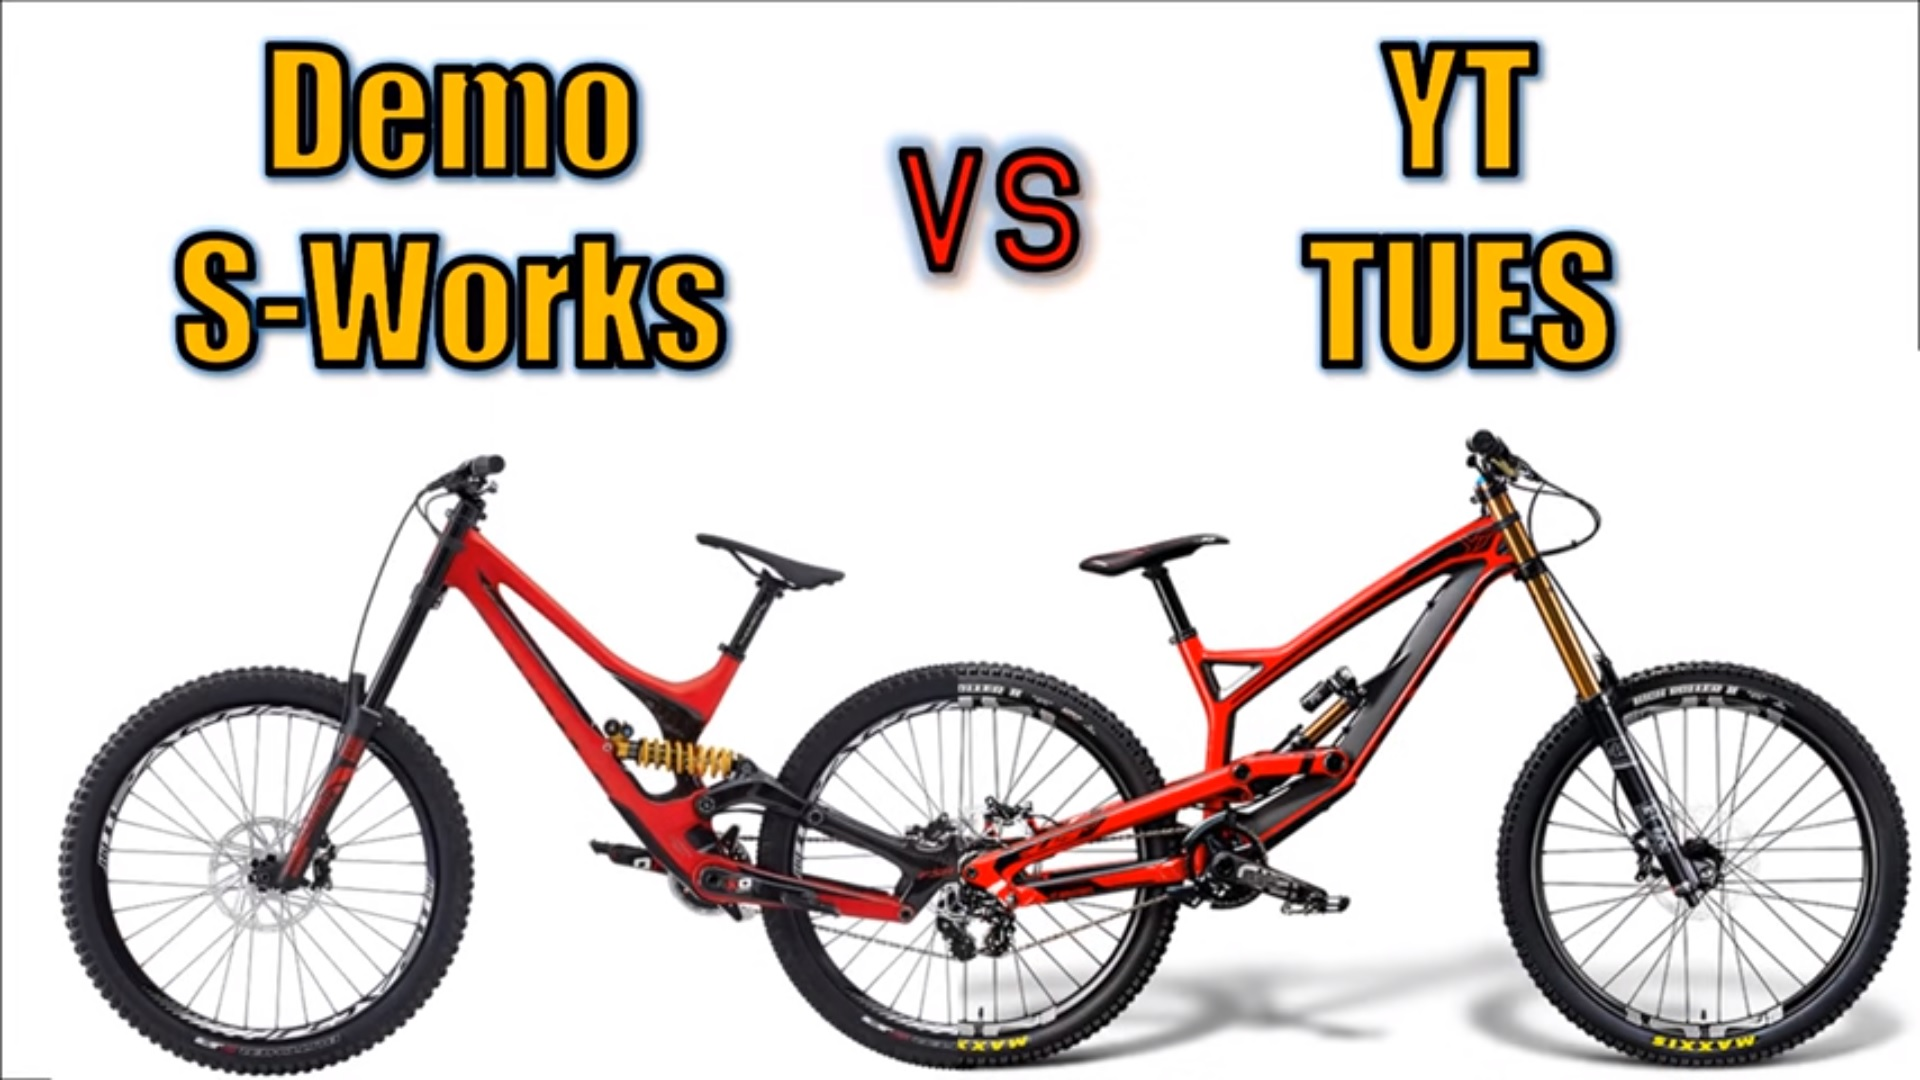 YT Tues vs. Specialized Demo - Linkage Analysis